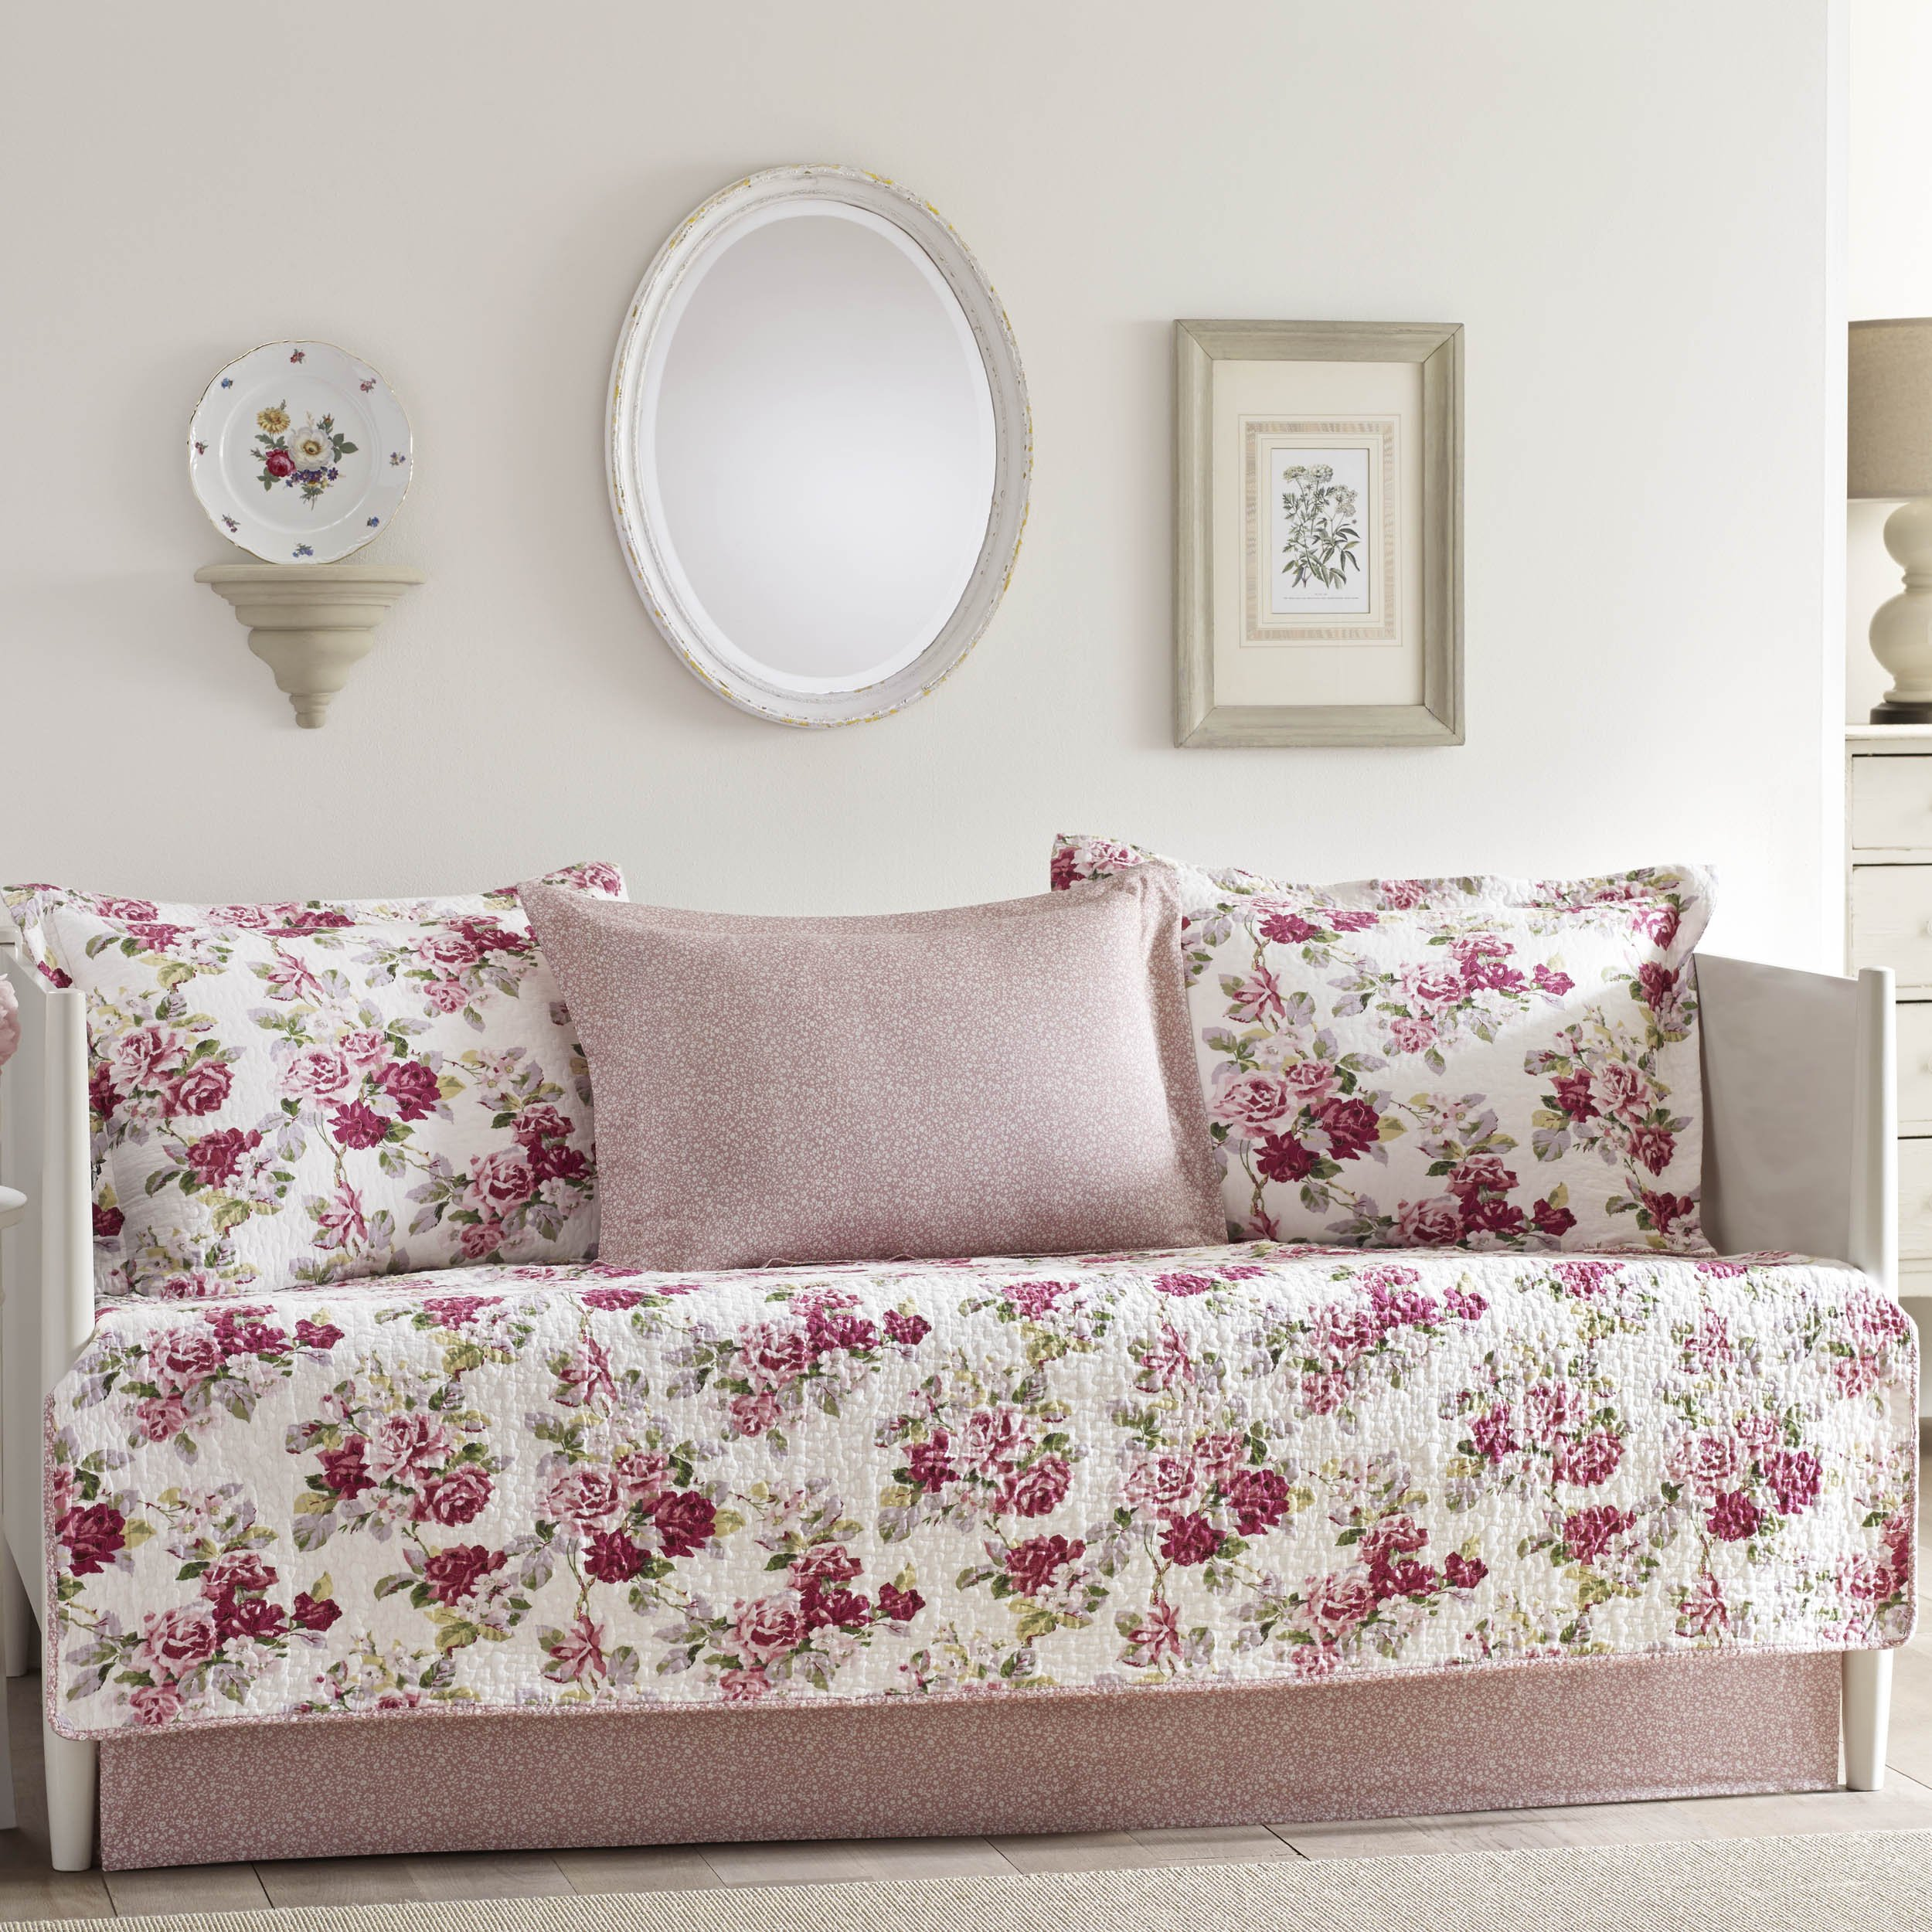 Laura Ashley Lidia 5-Piece Daybed Cover Set, Twin, Medium Red by Laura Ashley